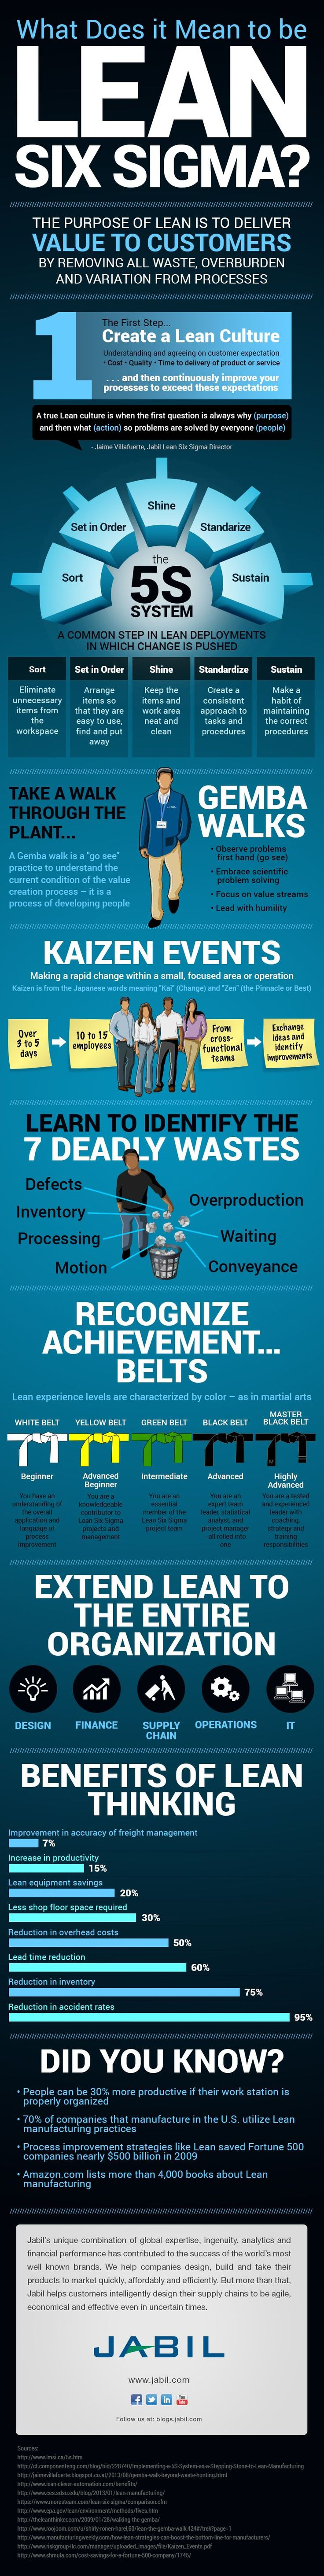 Lean Six Sigma Infographic | Jabil Blog: Aim Higher